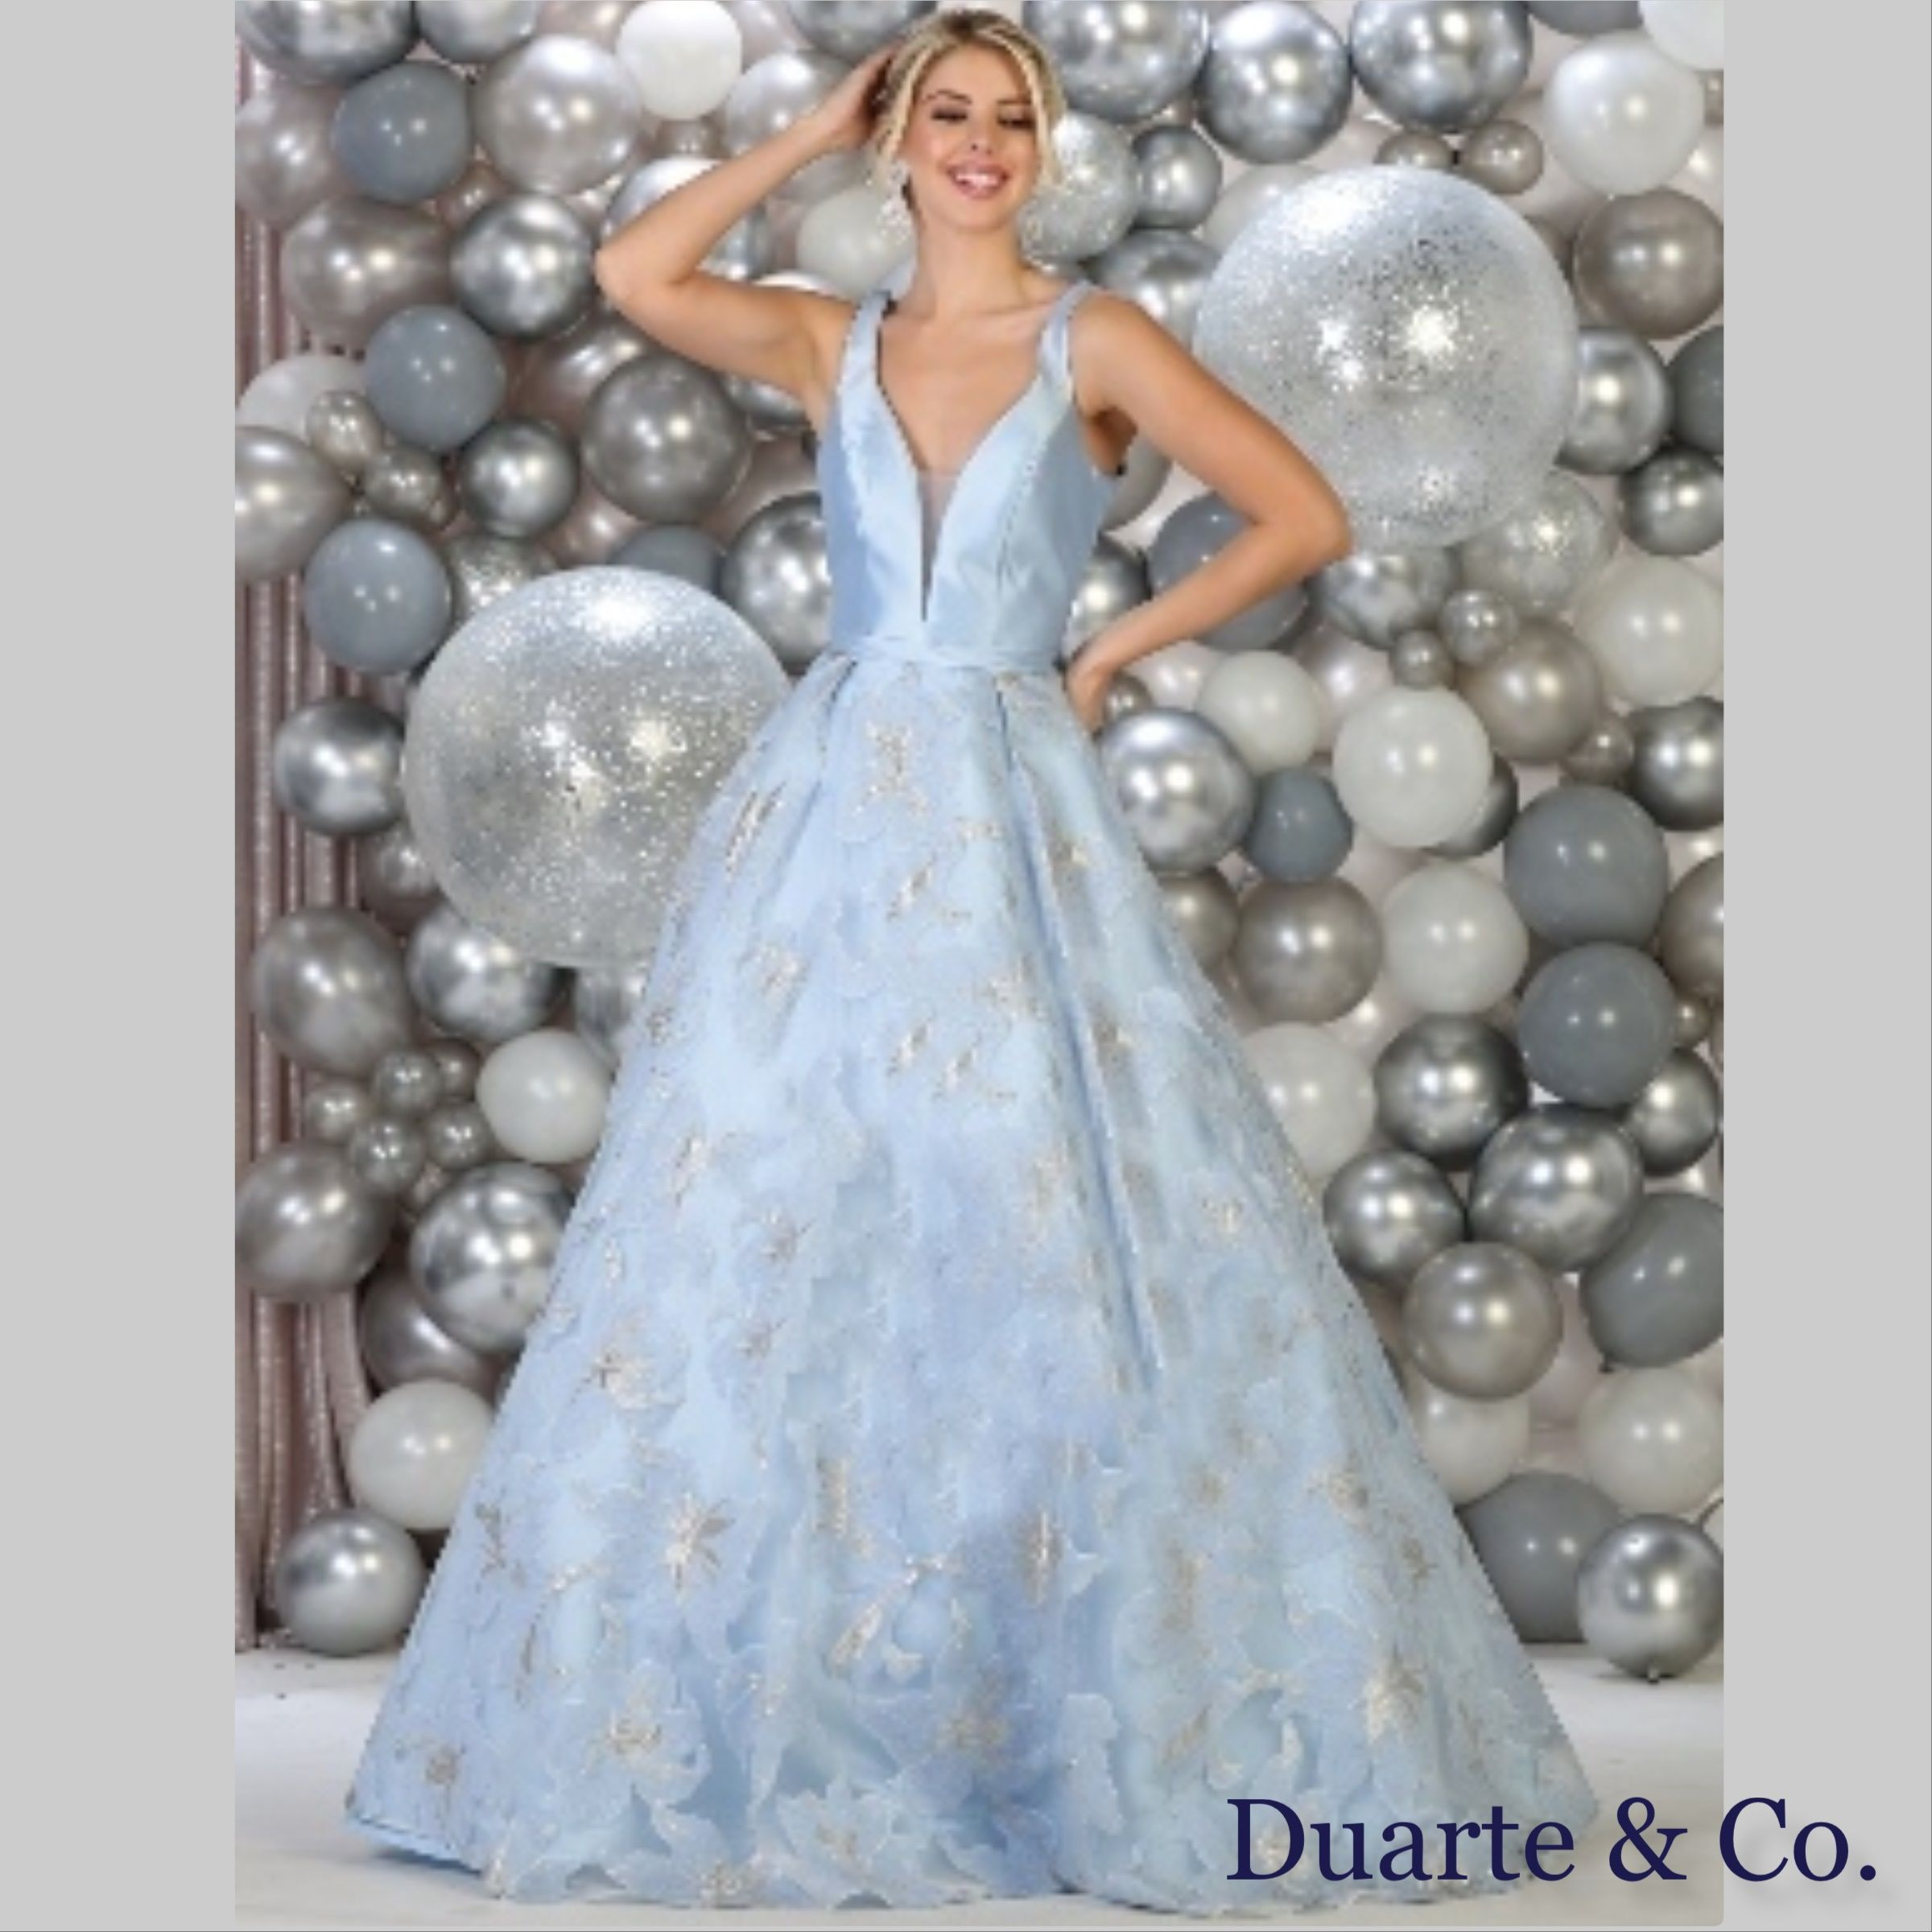 502ff18c6b6a DC177301 $230.00 Fantastic Floral Satin Ball Gown is made of satin on top  with a floral skirt made of mesh material with pockets.